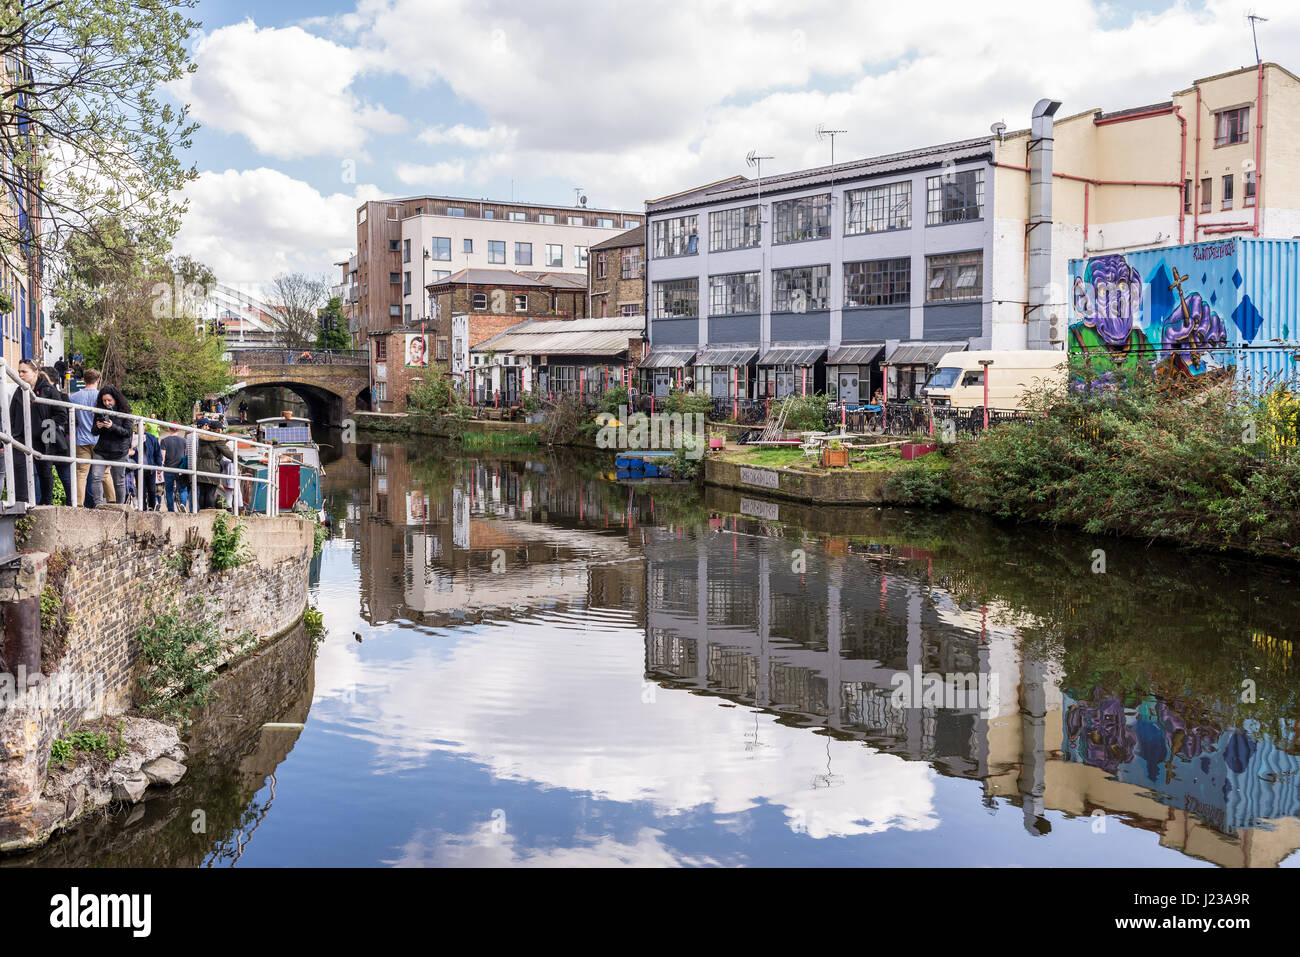 A stretch of the Regent's Canal in Haggerston, Hackney, East London. Known as the Haggerston Riviera and lined - Stock Image